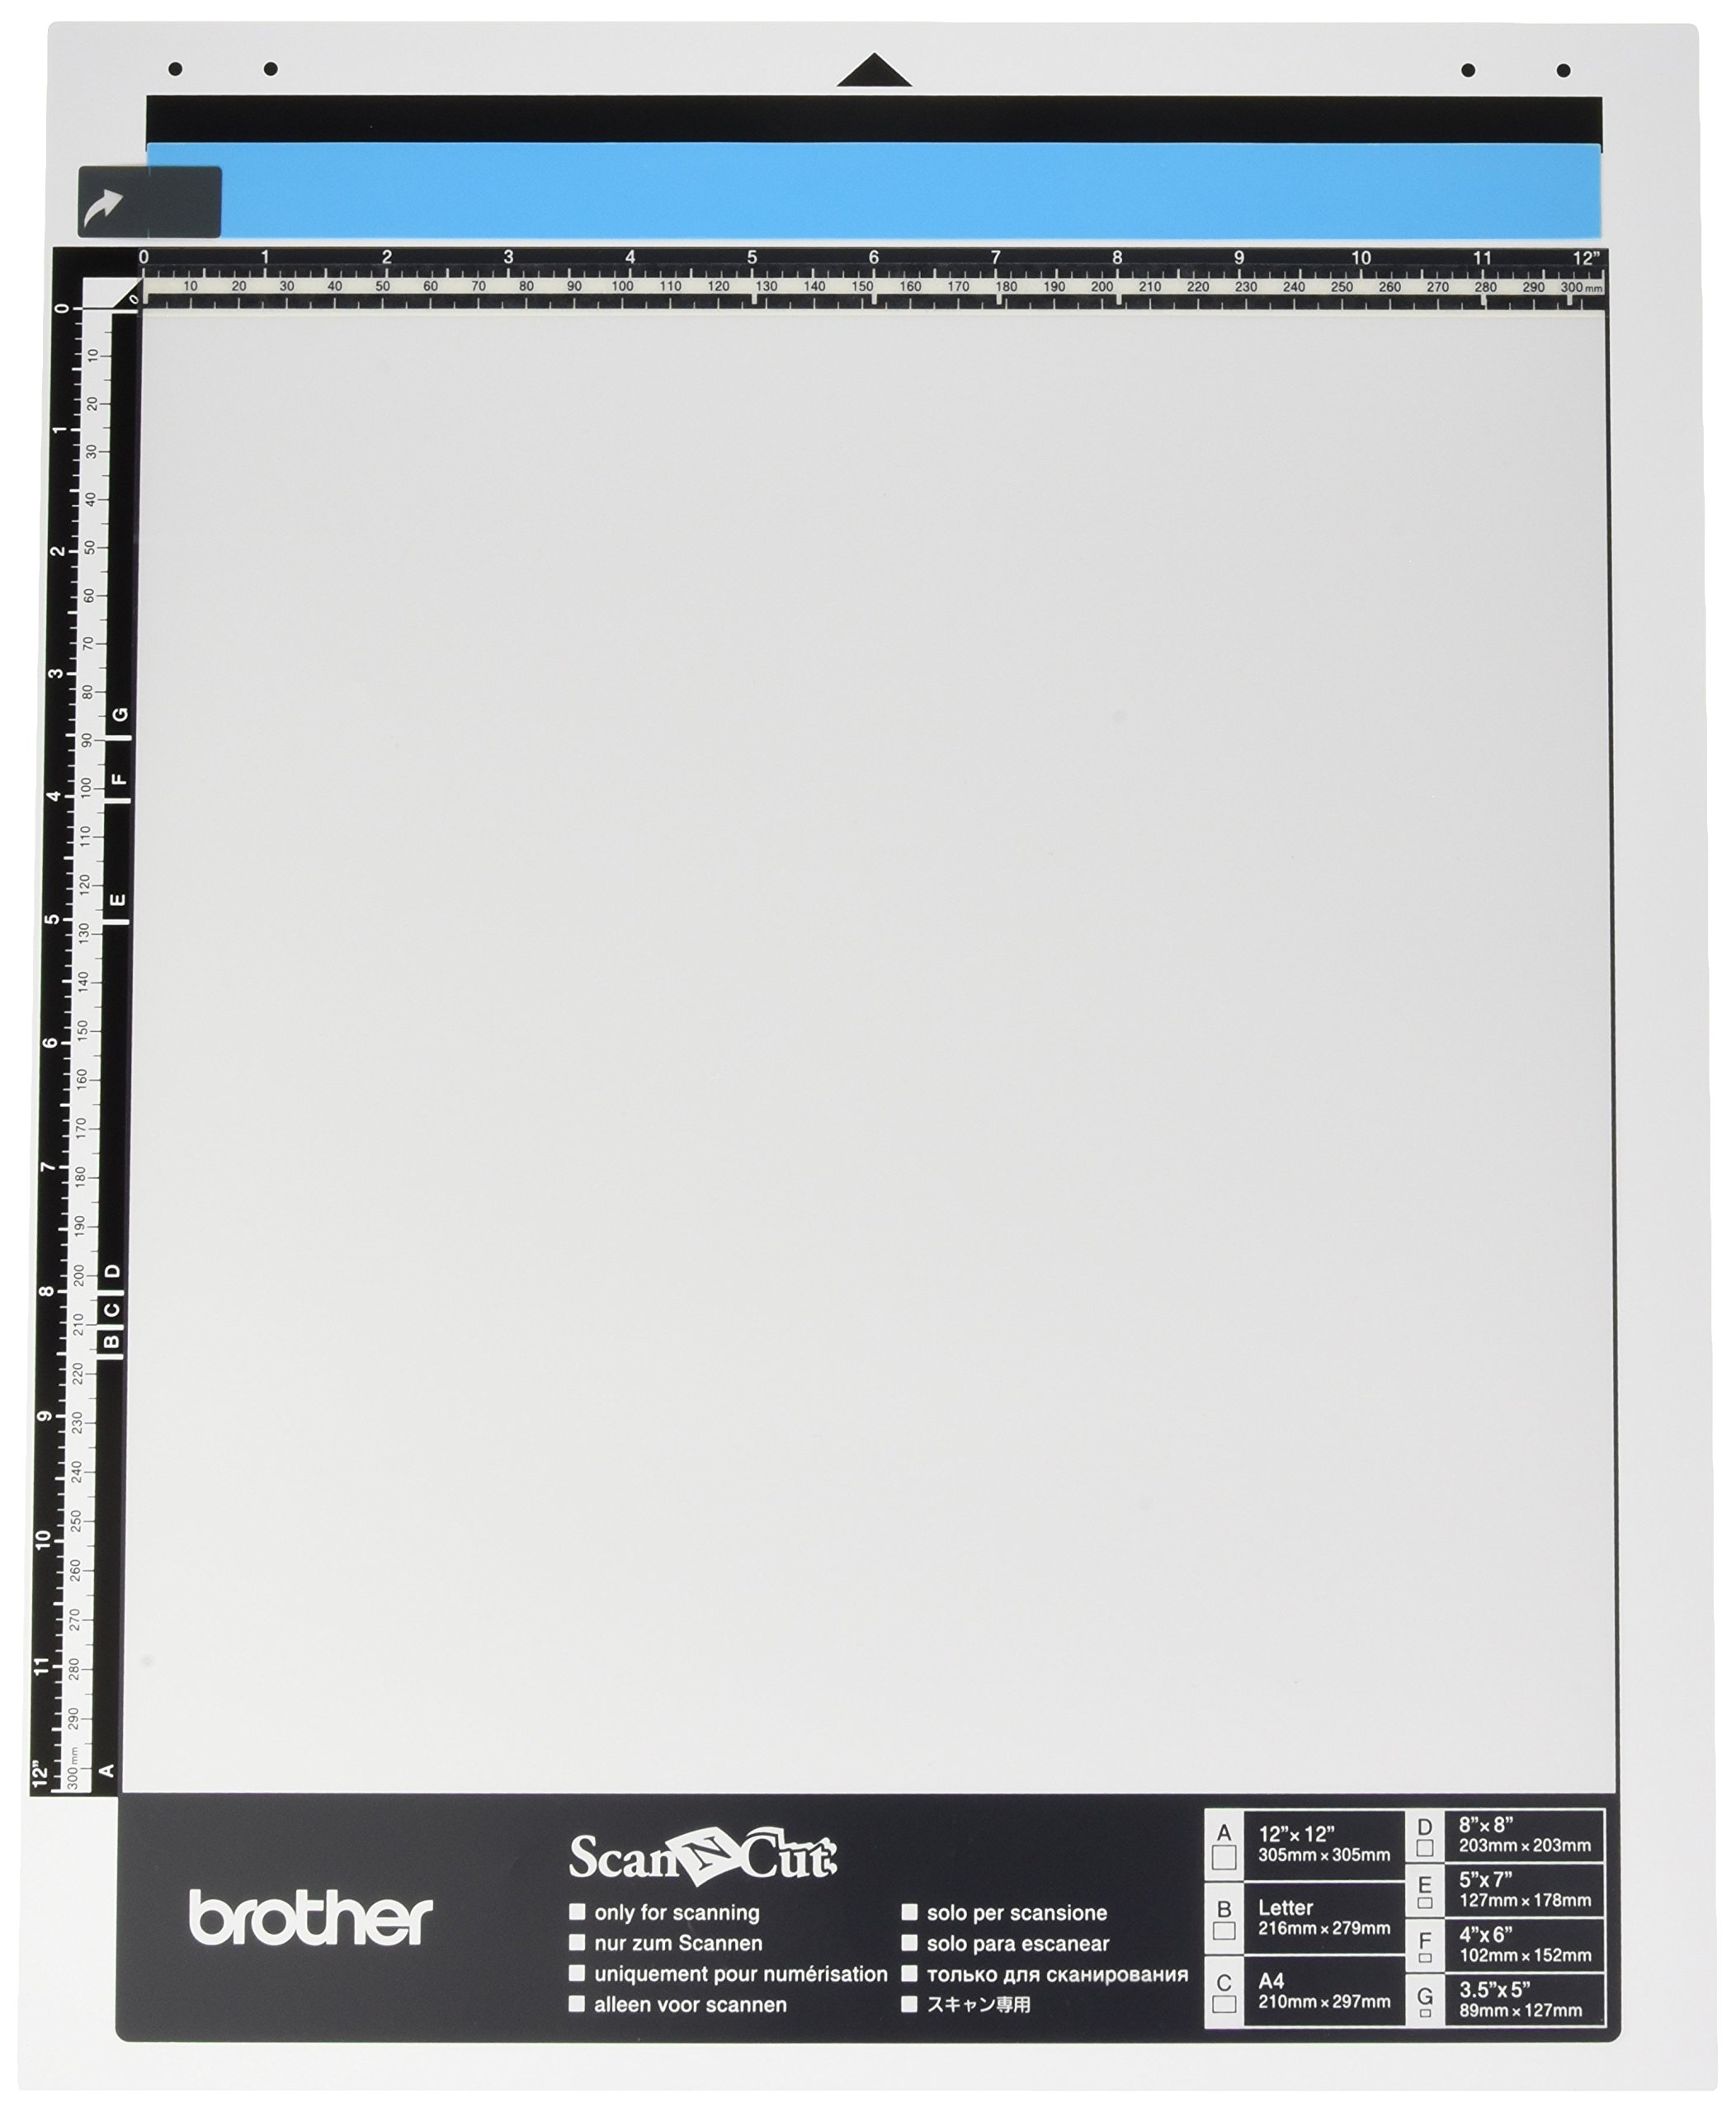 Brother CAMATS12 Photo Scanning Mat 12X12 by Brother